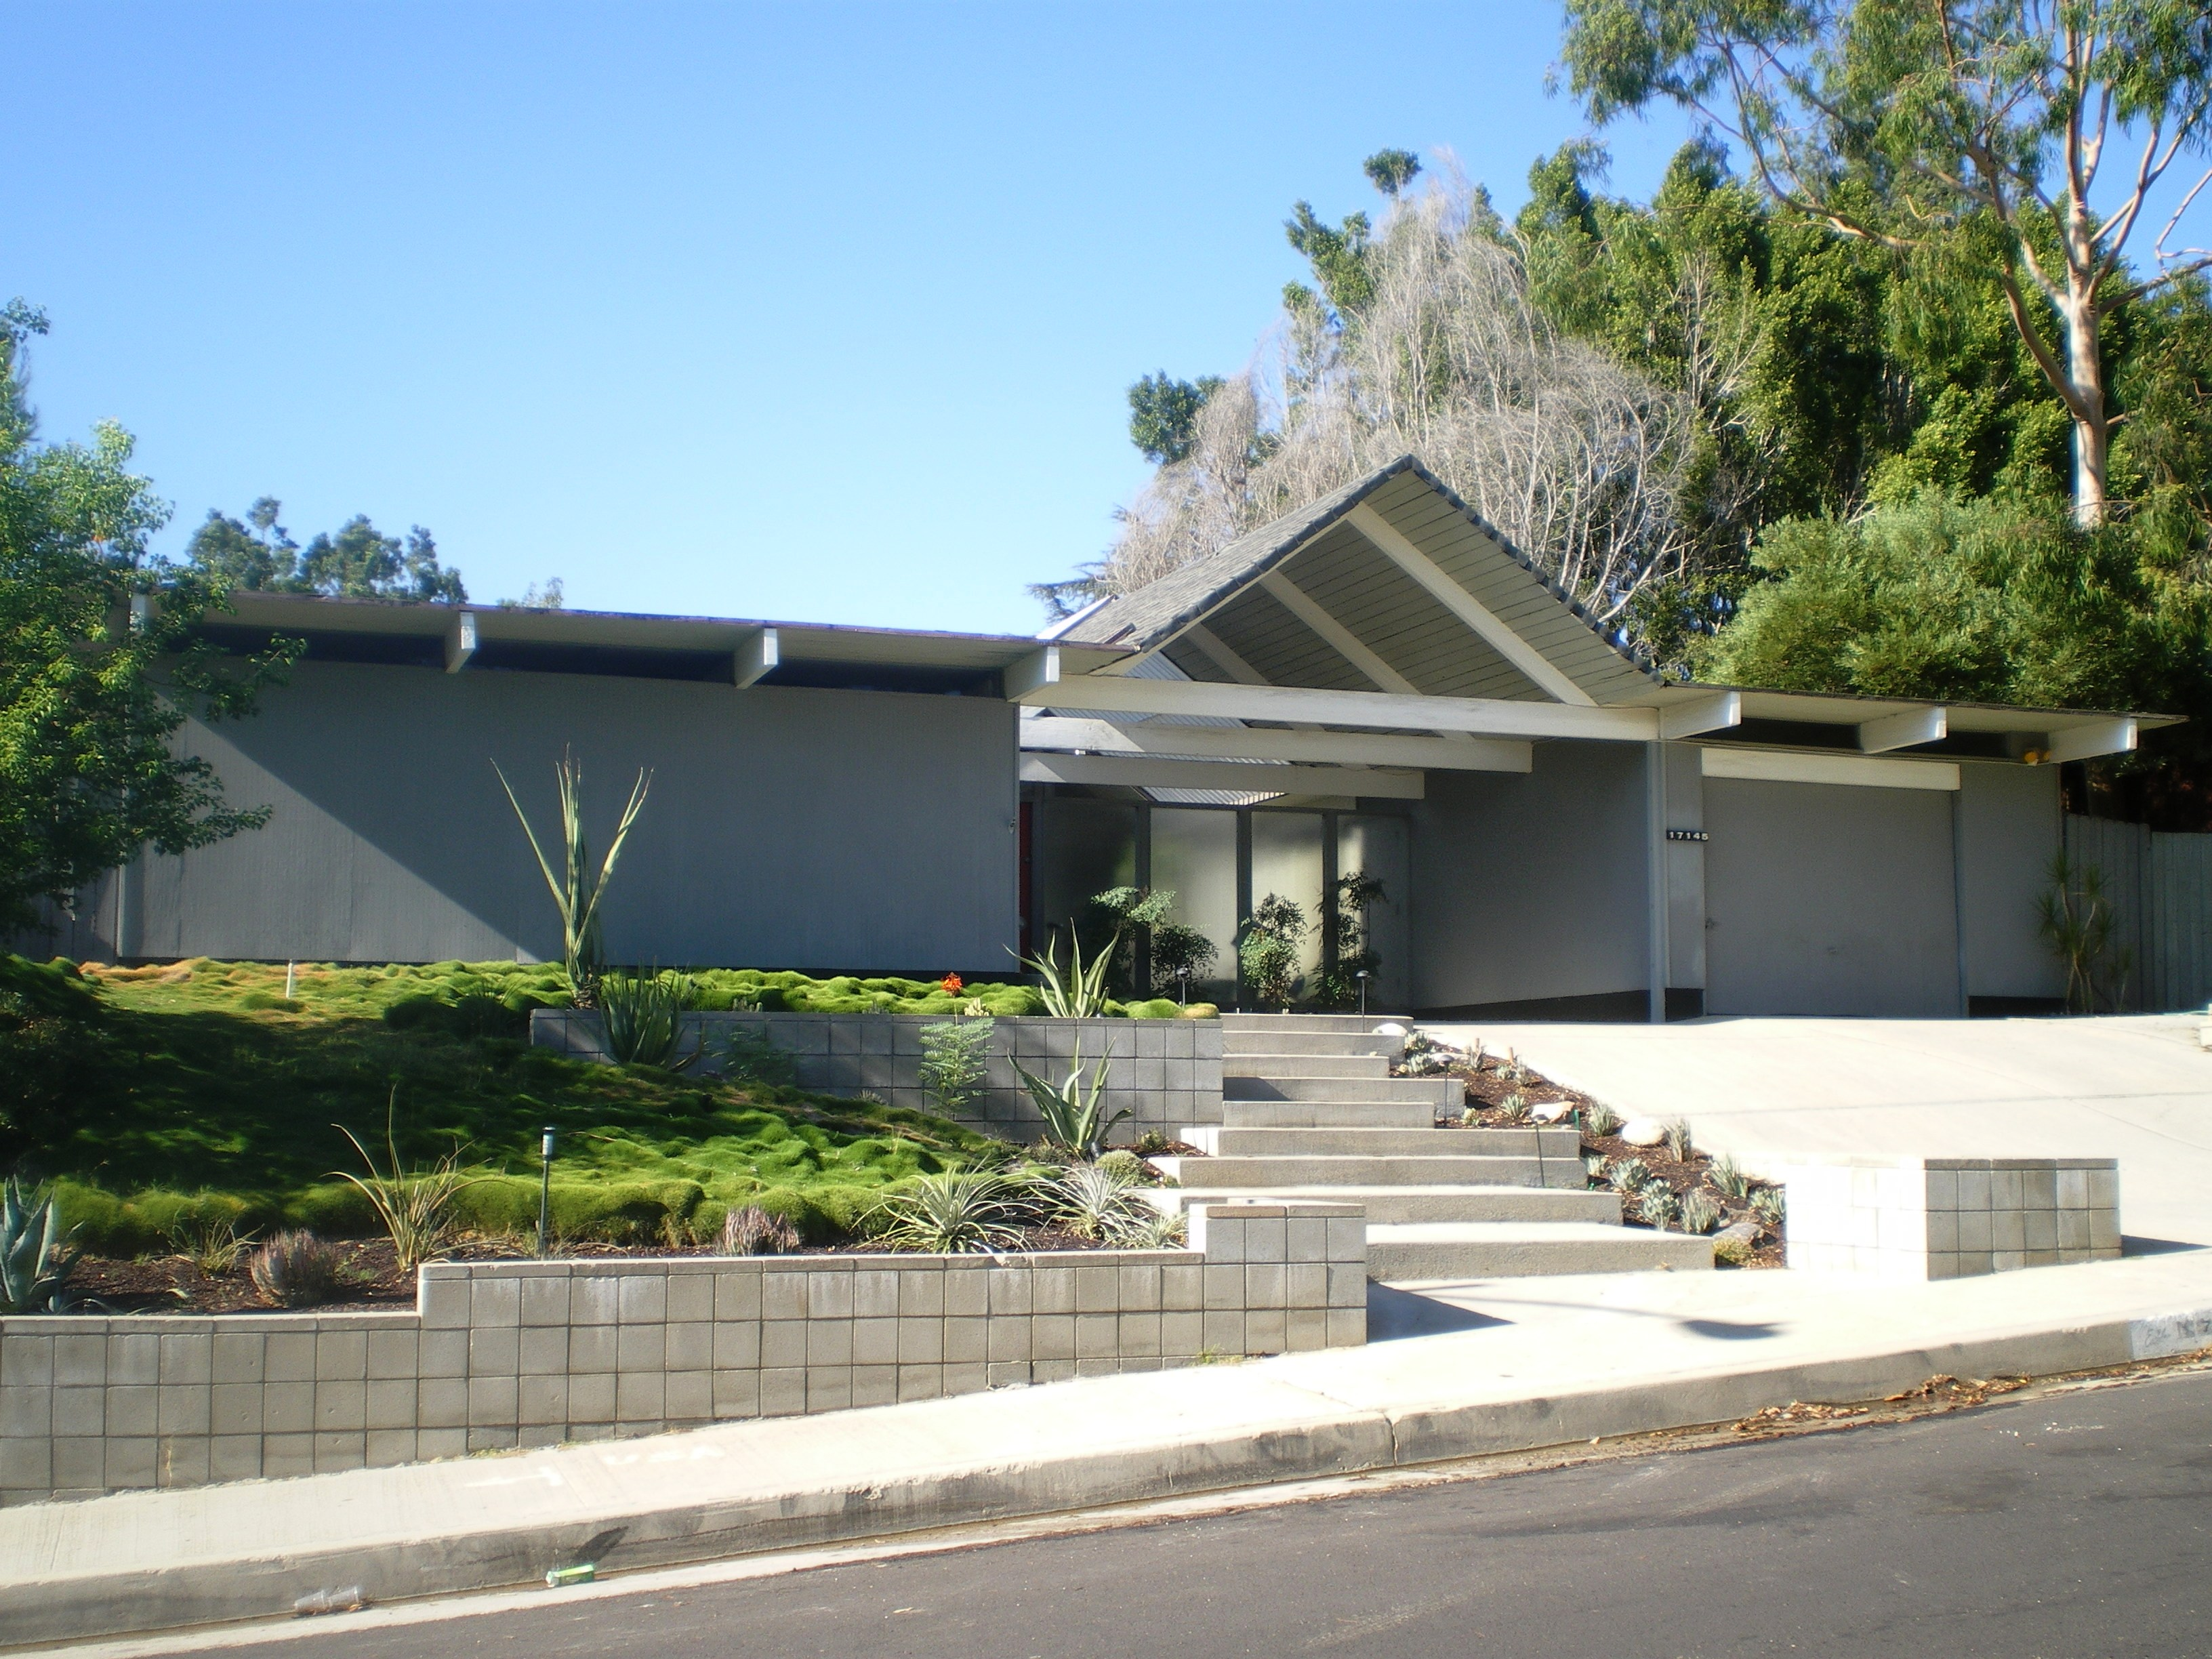 Joseph eichler and the apple architectoid for Mid century modern home builders